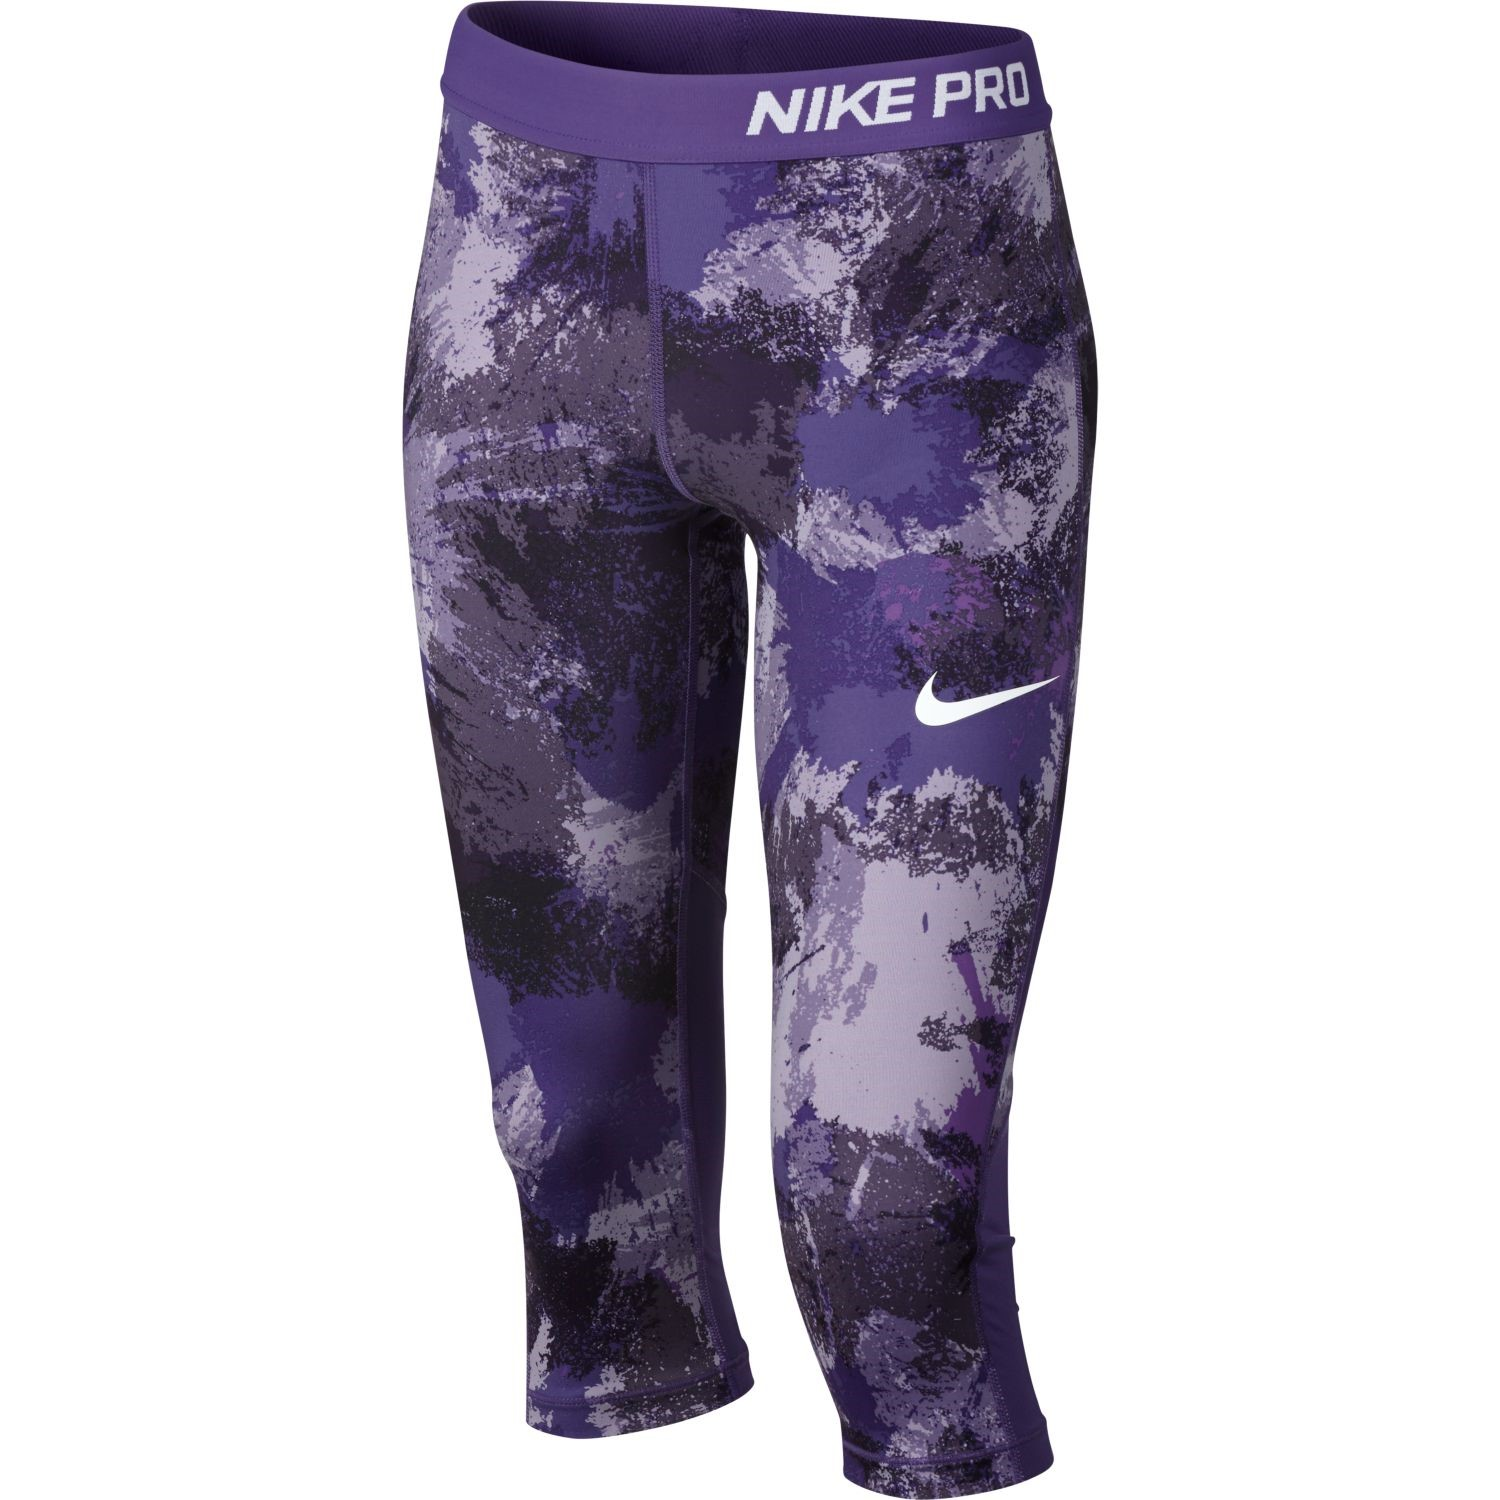 ec7dd458914f5 Nike Pro All Over Print Kids Girls Capri Training Tights - Dark Iris Purple